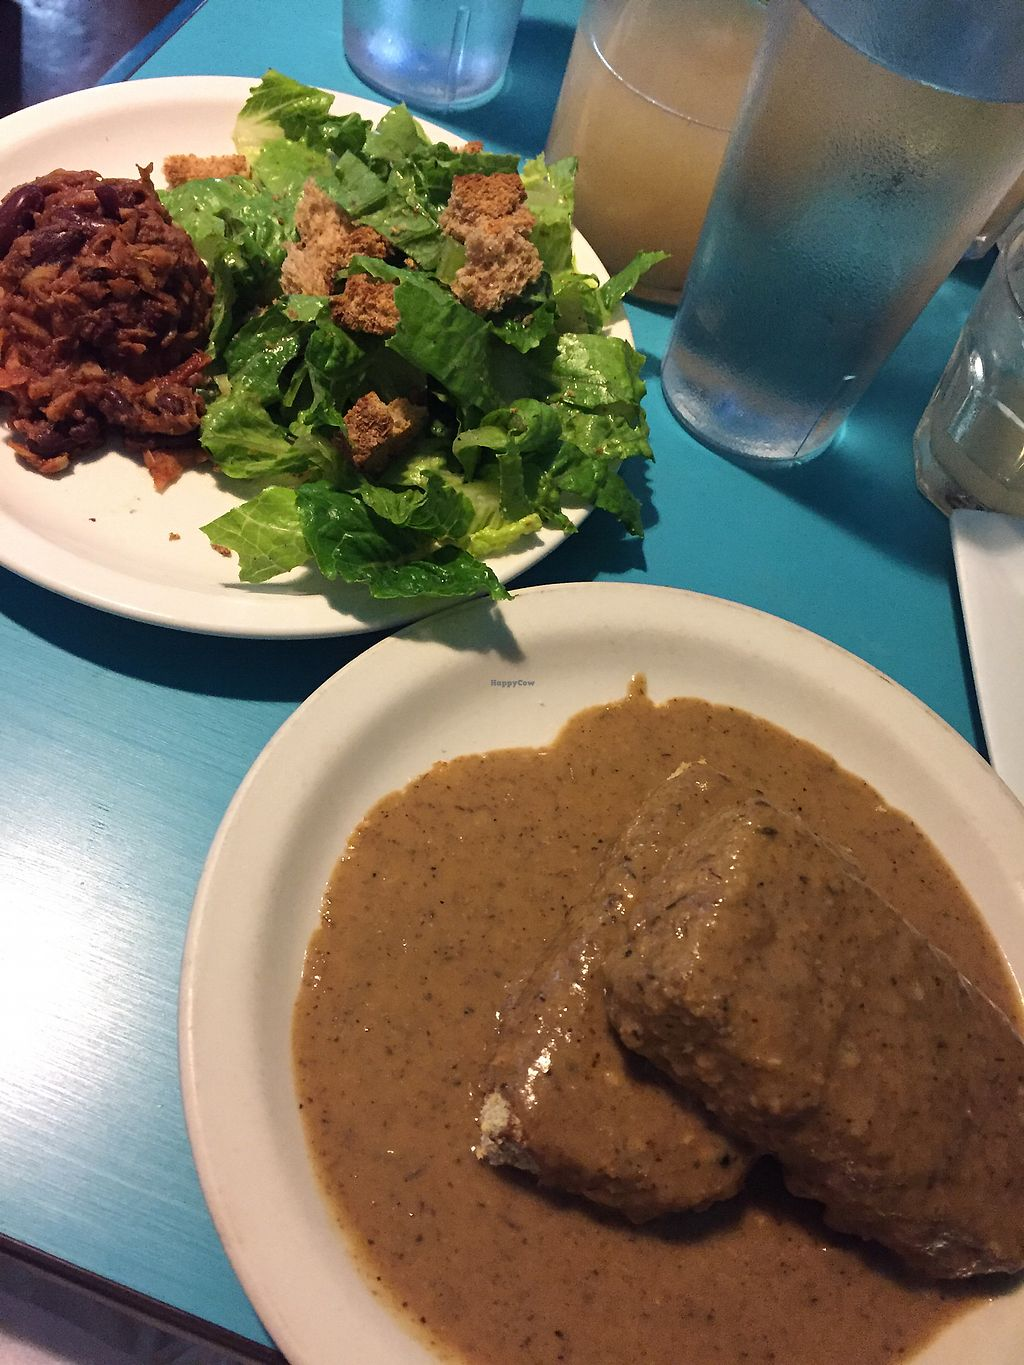 """Photo of Counter Culture  by <a href=""""/members/profile/EricaEff"""">EricaEff</a> <br/>Southern fried seitan with gravy, Caesar salad, and bbq jackfruit <br/> May 6, 2018  - <a href='/contact/abuse/image/18120/396250'>Report</a>"""